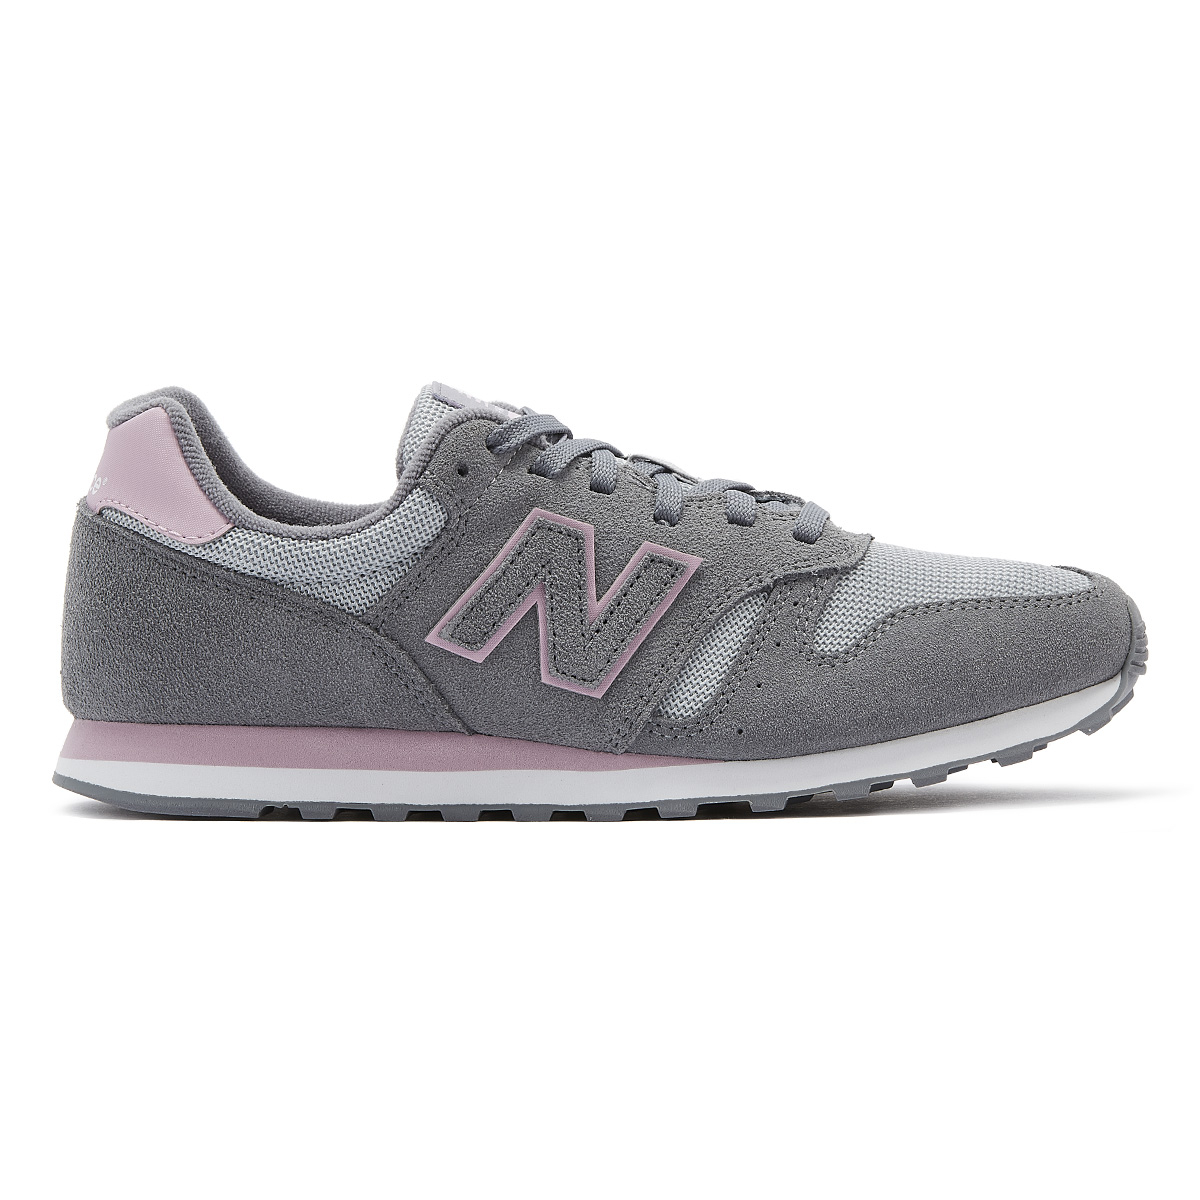 batalla libro de bolsillo Prima  New Balance 373 Womens Grey / Pink Ladies Sport Casual Shoes | eBay